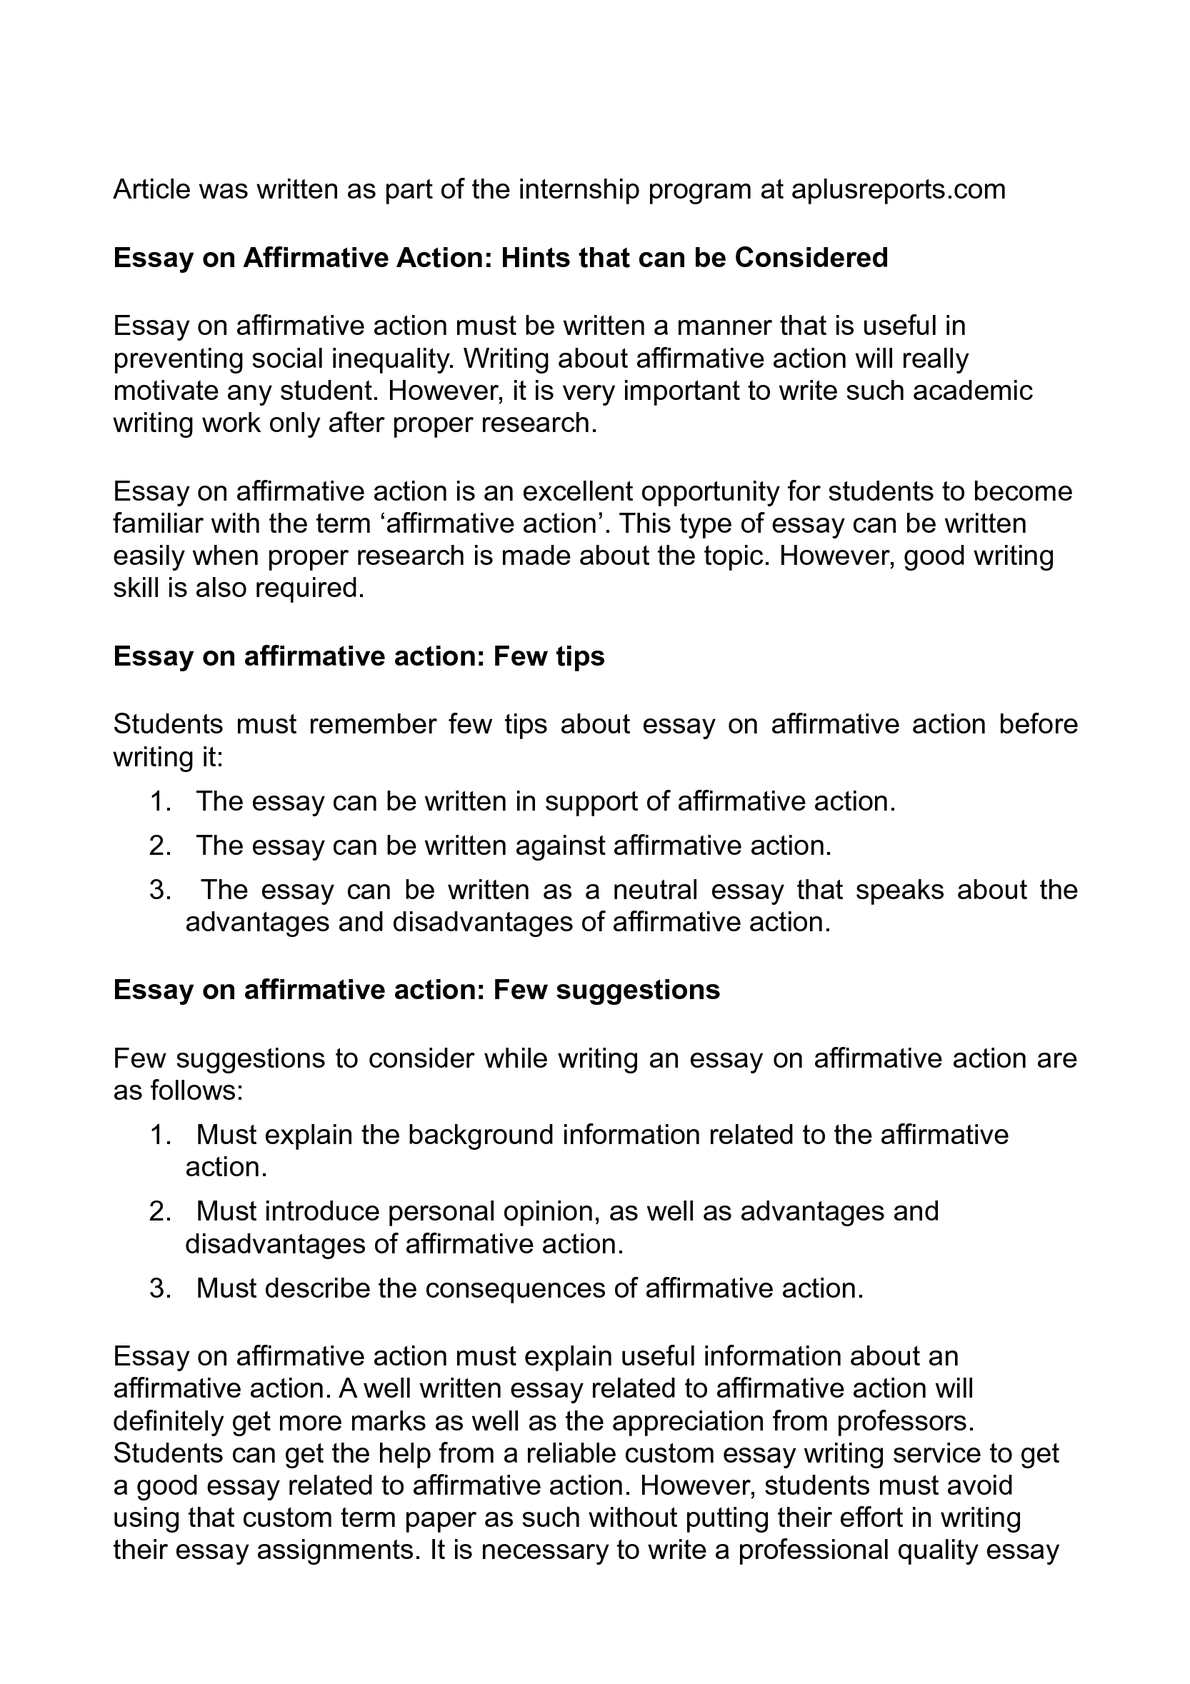 Calam o essay on affirmative action hints that can be considered